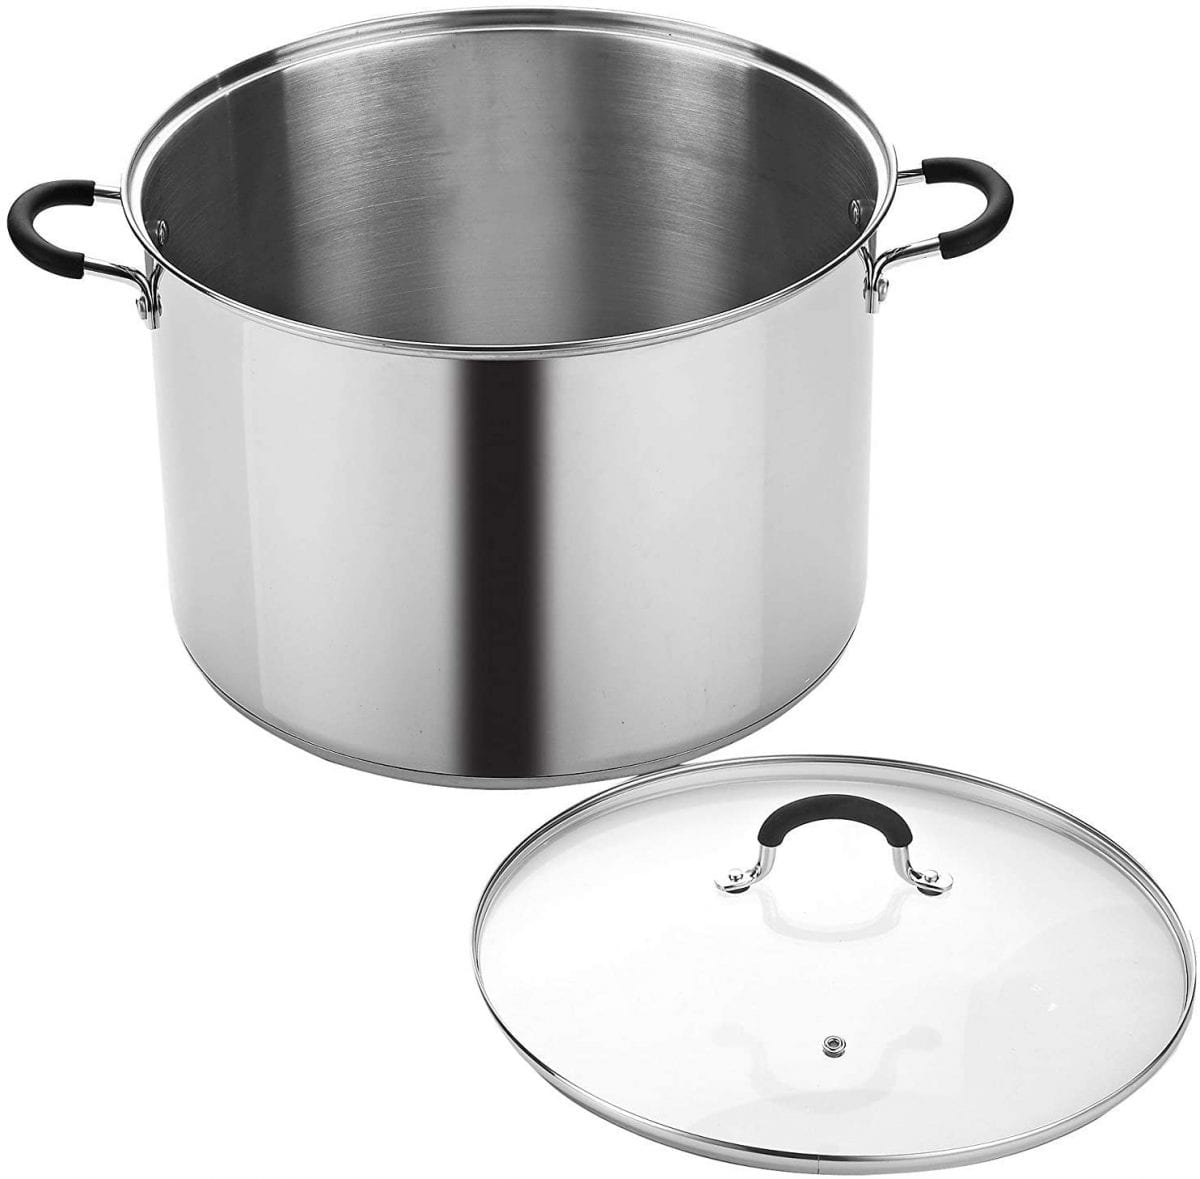 Cook N Home silver stock pot with lid